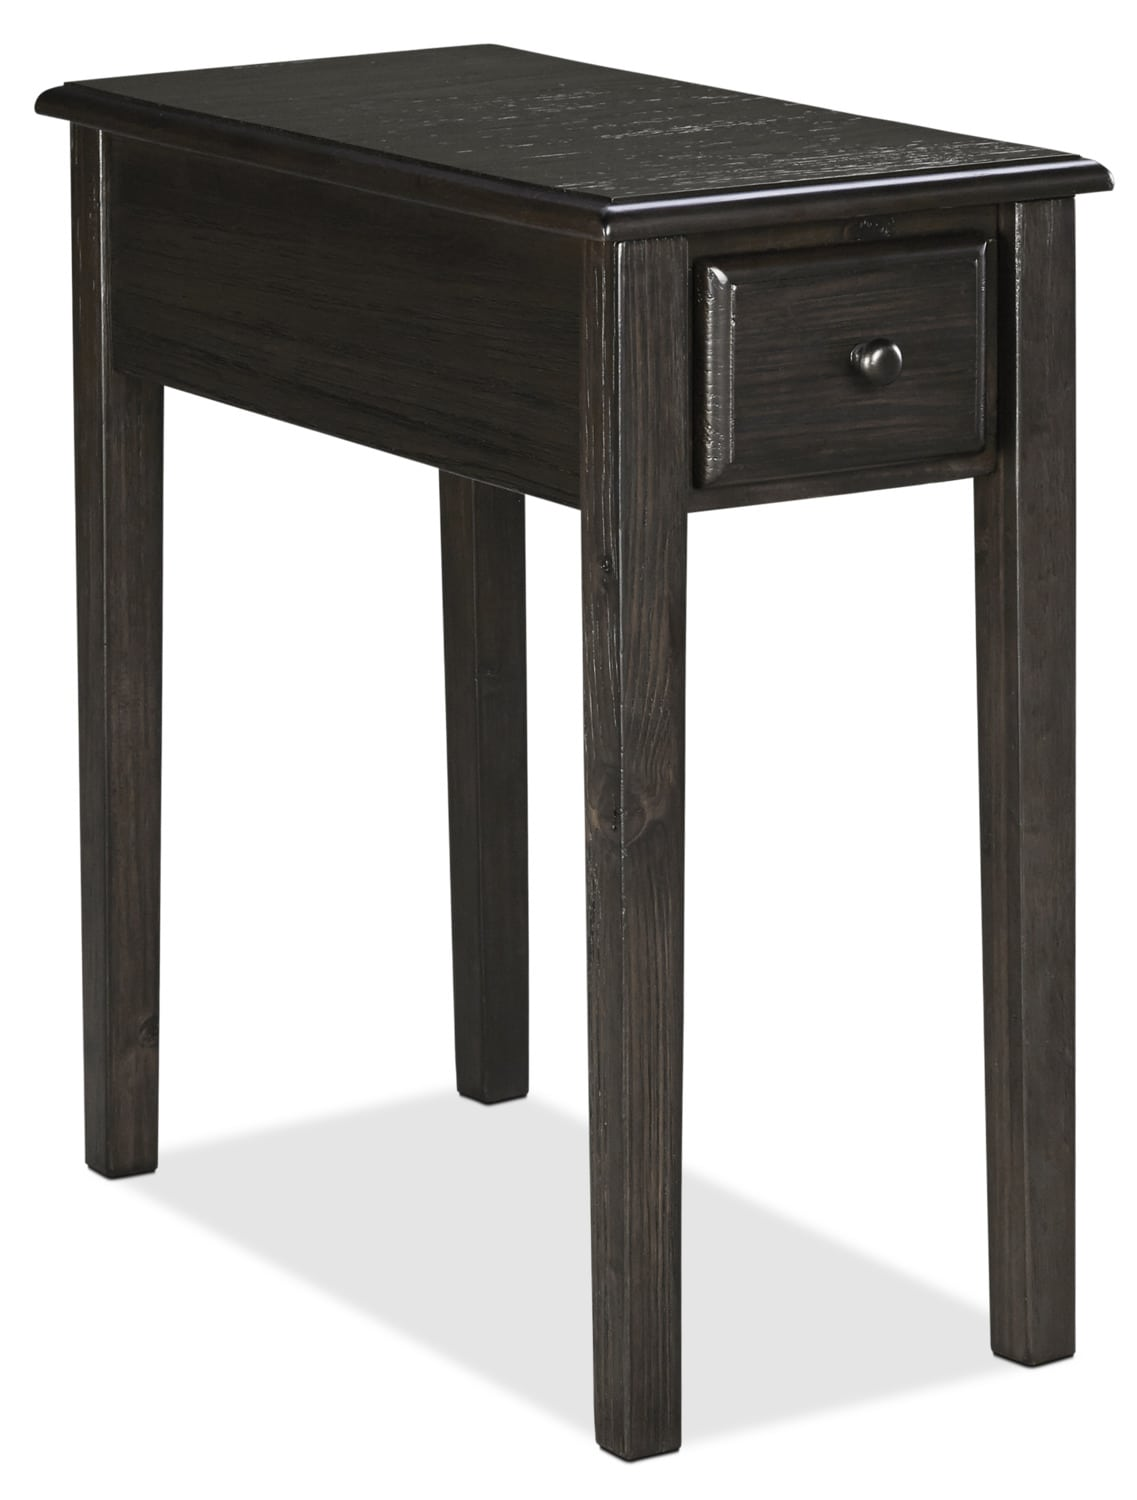 Table d'appoint Weldon en pin massif - gris-brun